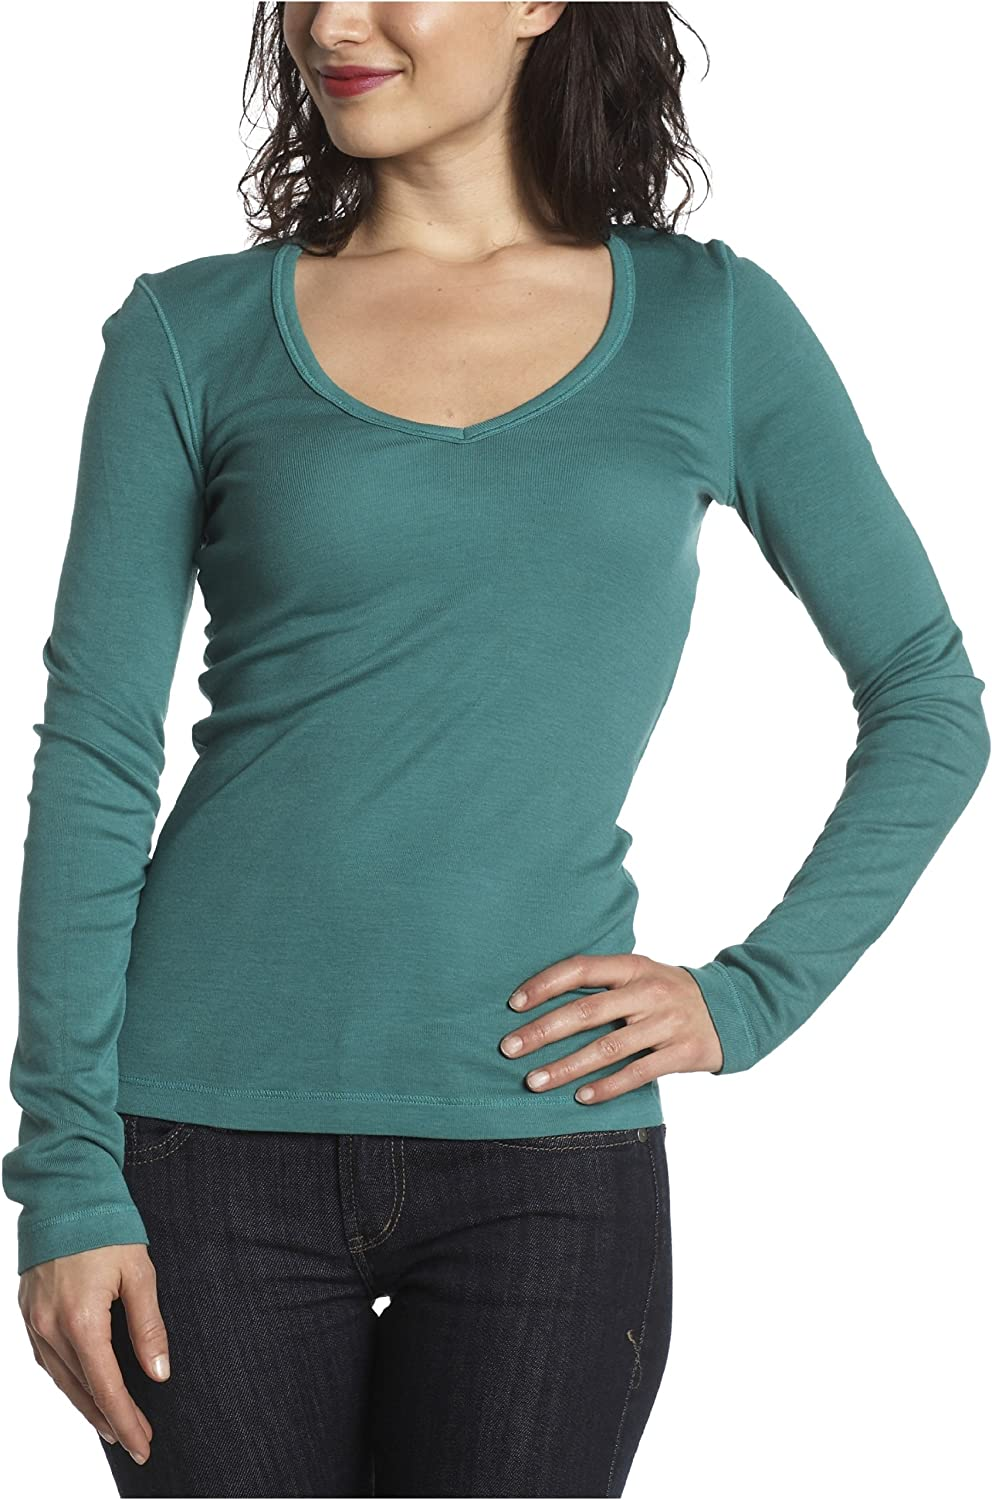 Splendid Cheap OFFicial mail order specialty store Women's Top V-Neck